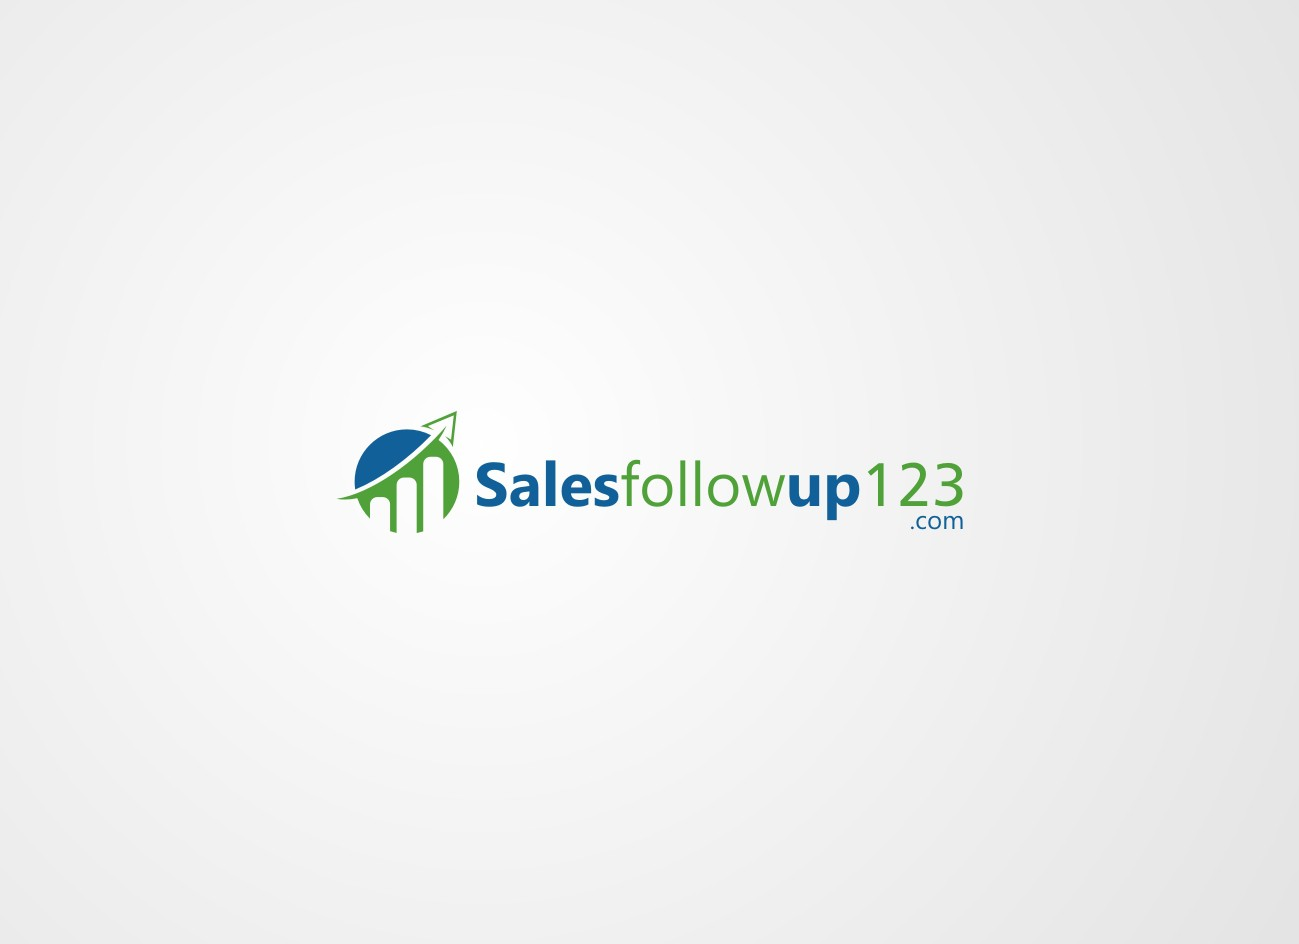 Help Salesfollowup123.com with a new logo